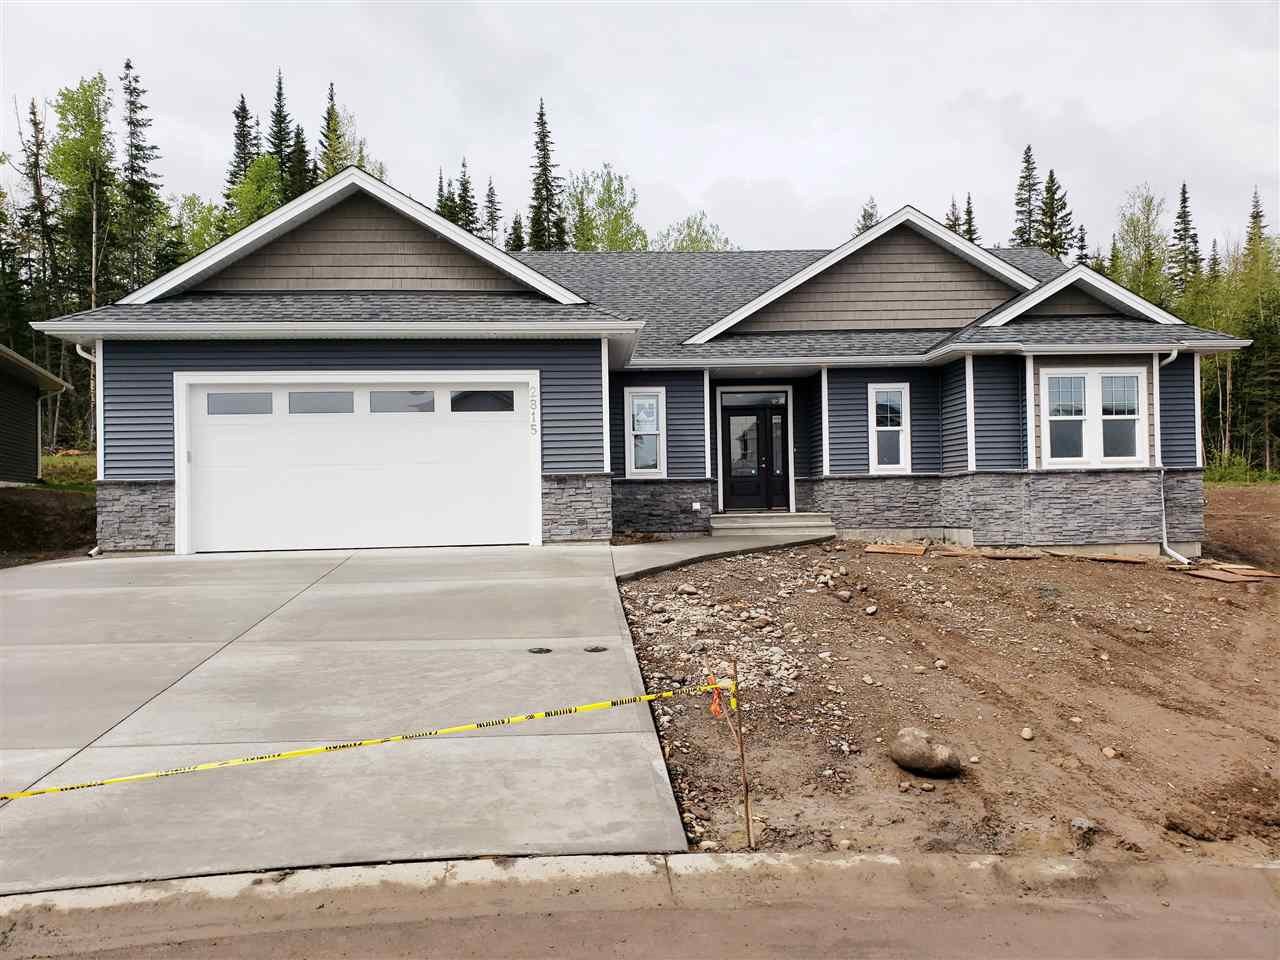 Main Photo: 2815 VISTA RIDGE Court in Prince George: St. Lawrence Heights House for sale (PG City South (Zone 74))  : MLS®# R2458117